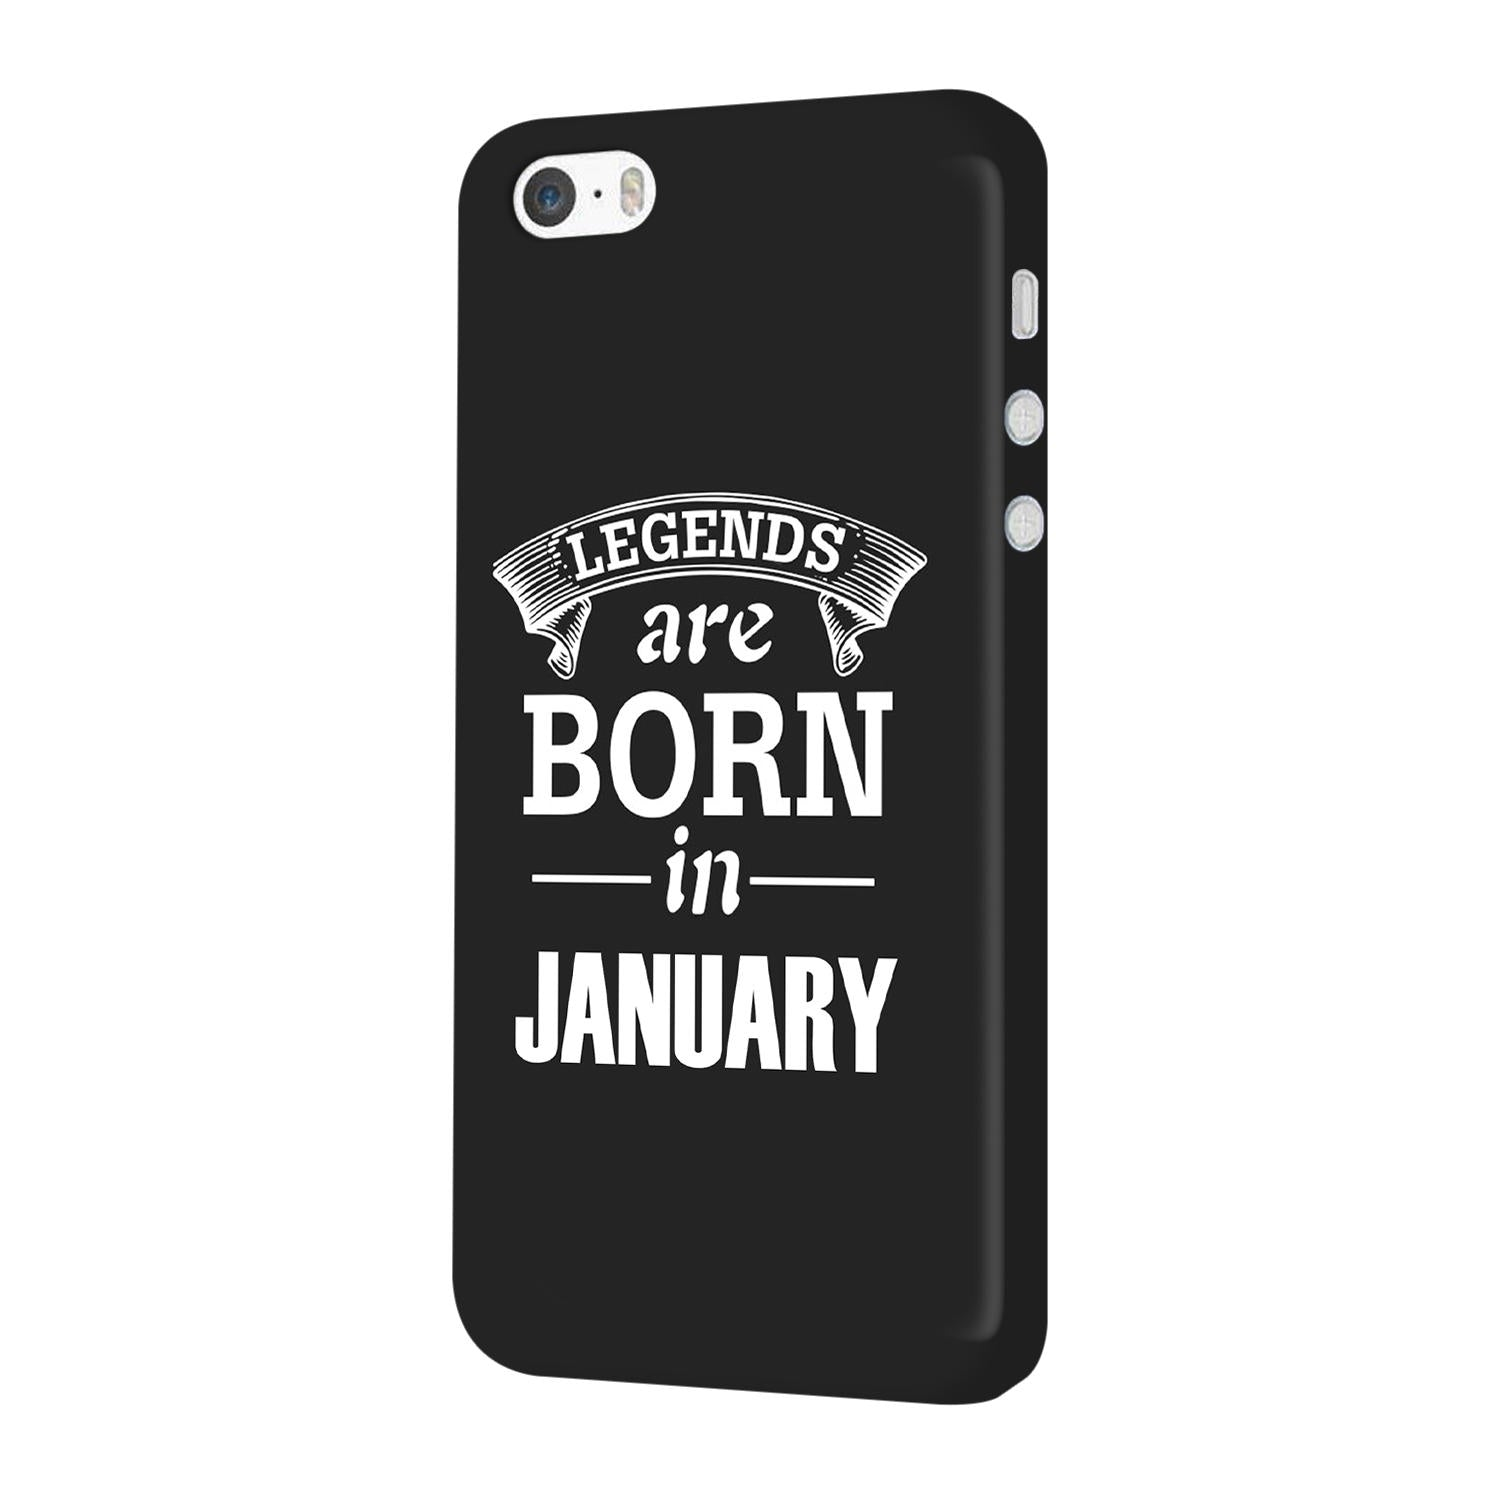 Legends January iPhone 5 Mobile Cover Case